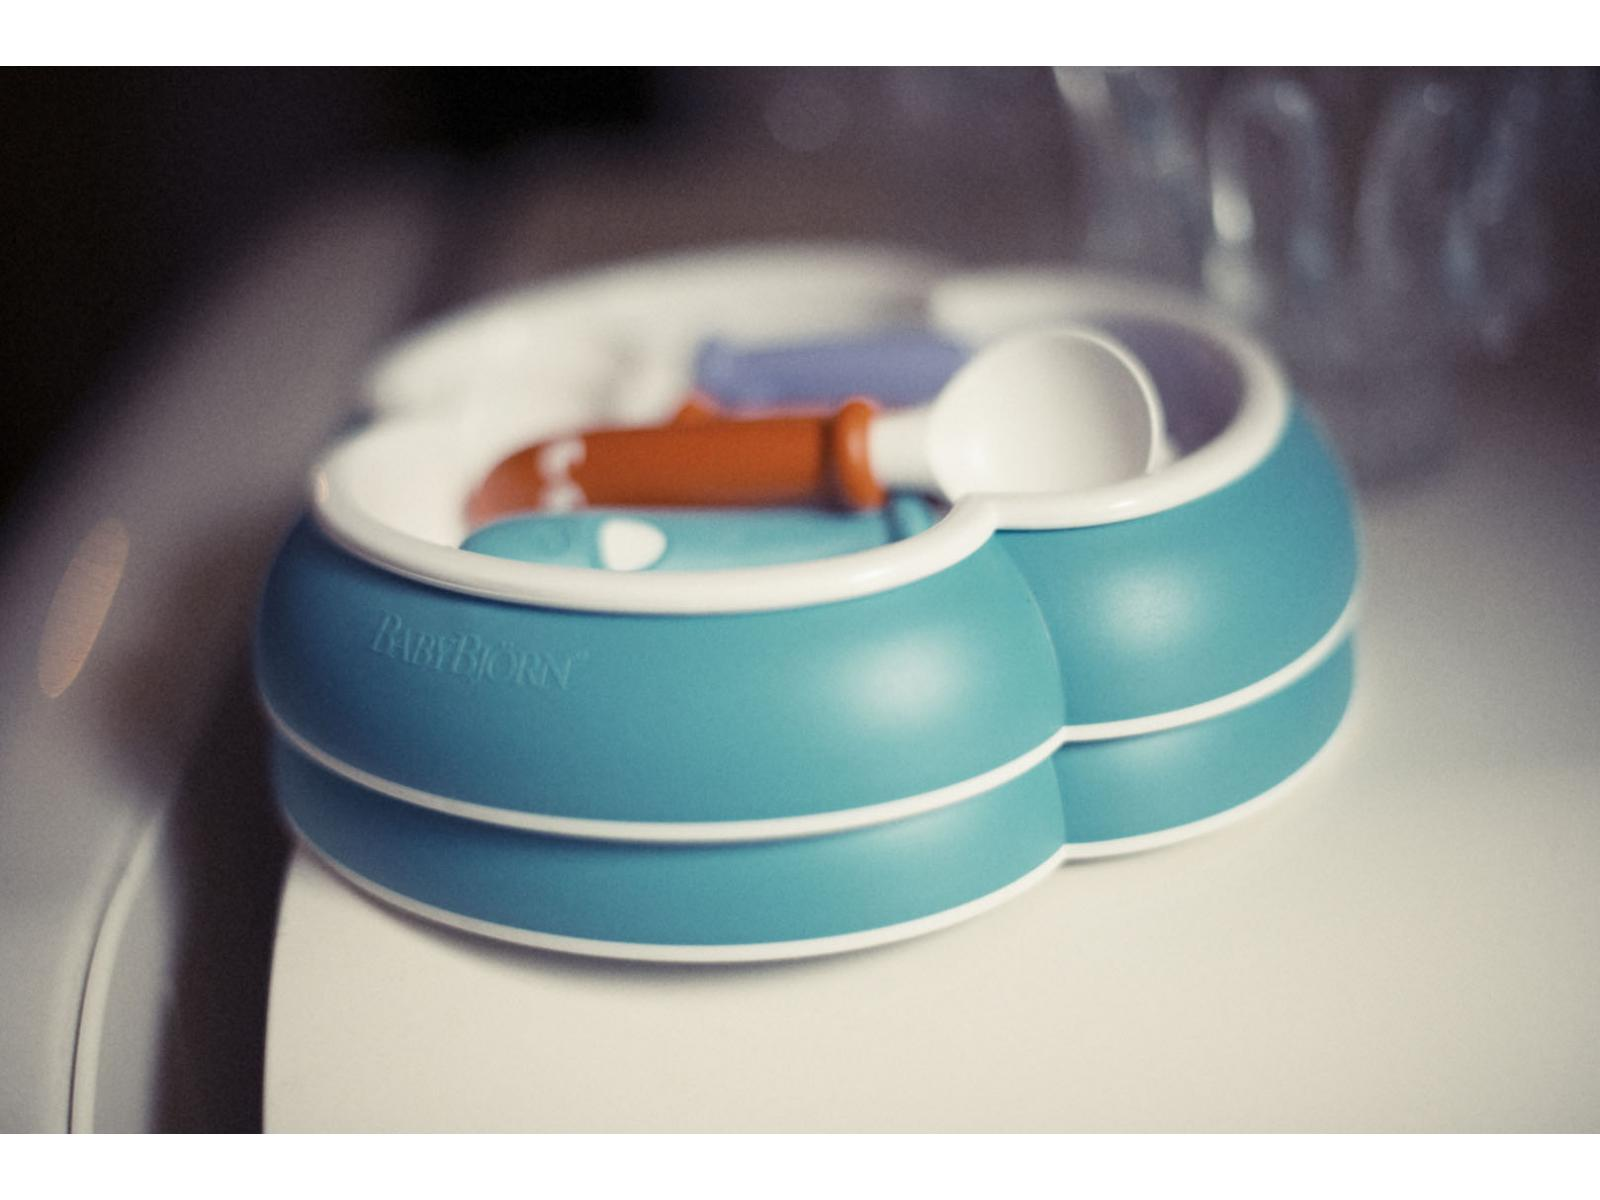 babybjorn assiette cuill re et fourchette pour b b babybj rn lot de 2 orange turquoise. Black Bedroom Furniture Sets. Home Design Ideas